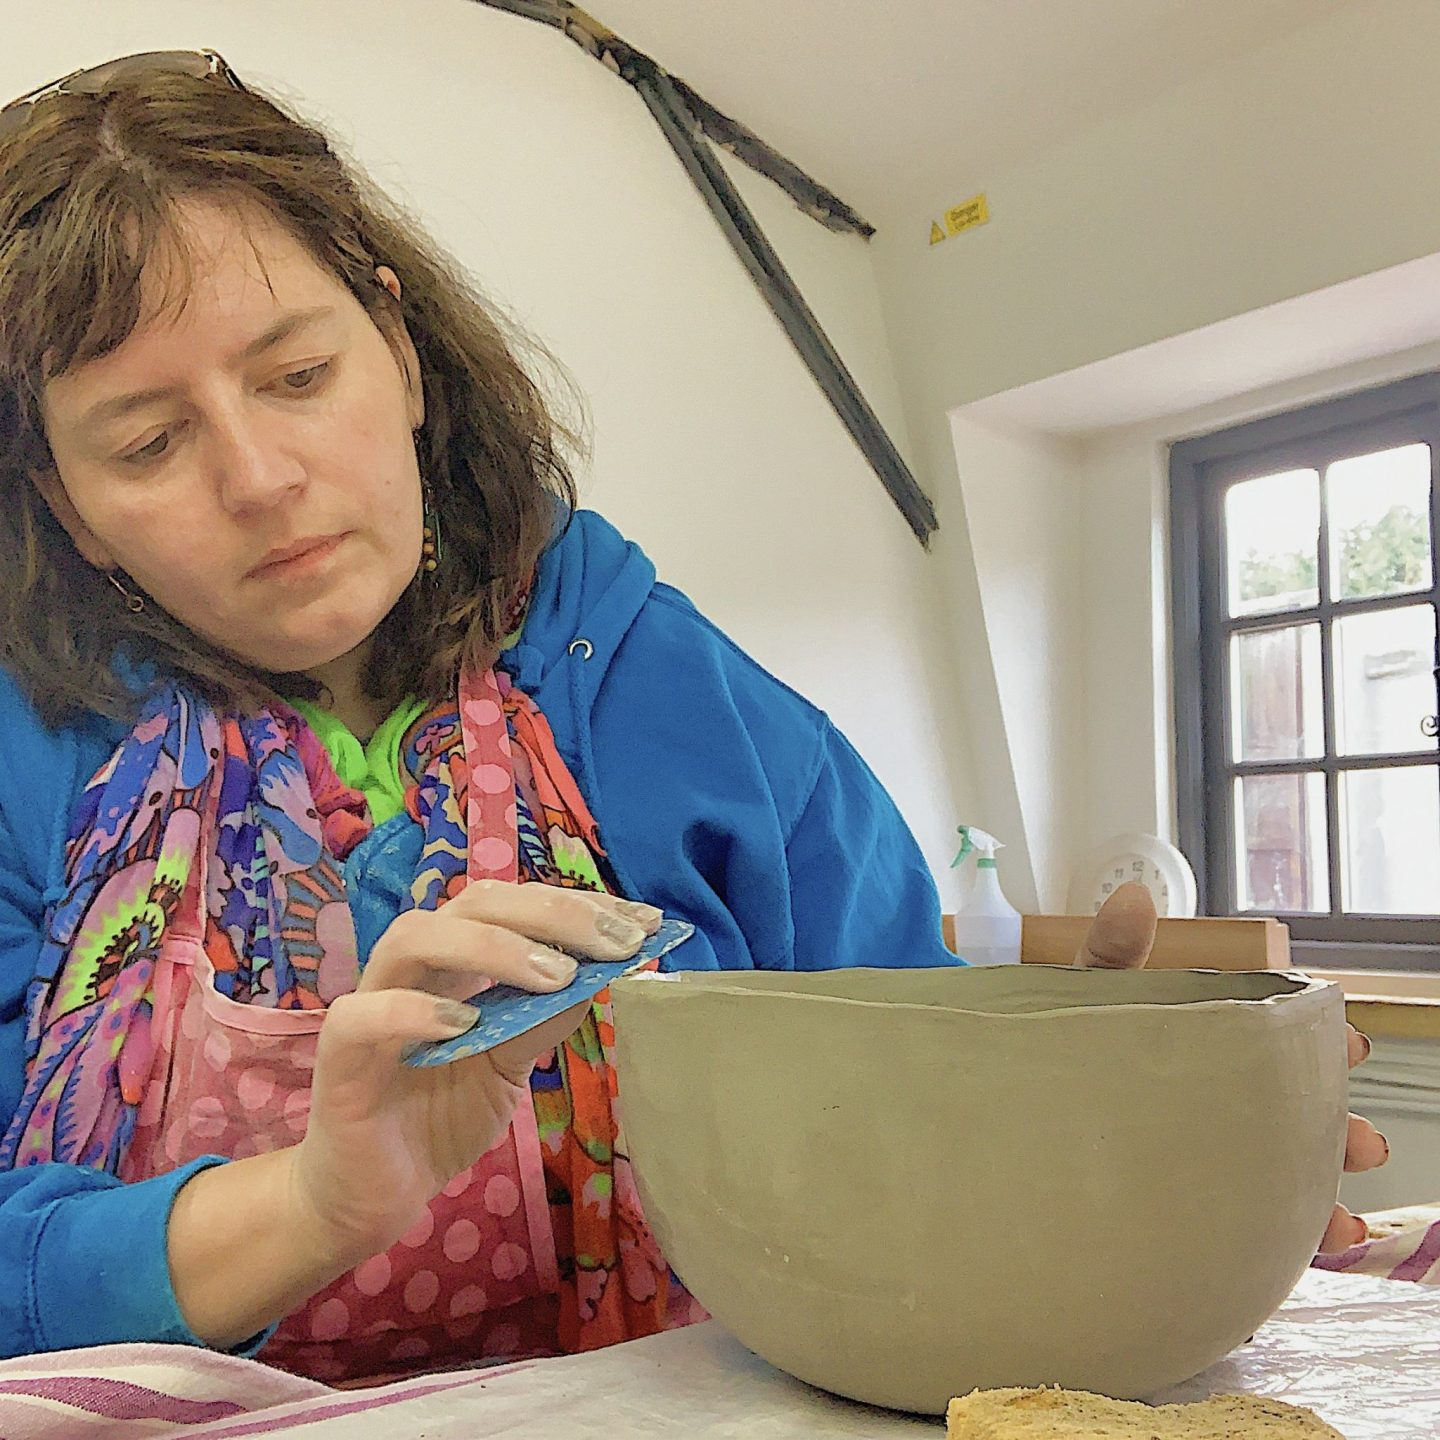 Lady smoothing a ceramic bowl wearing a blue hoody and colourful scarf